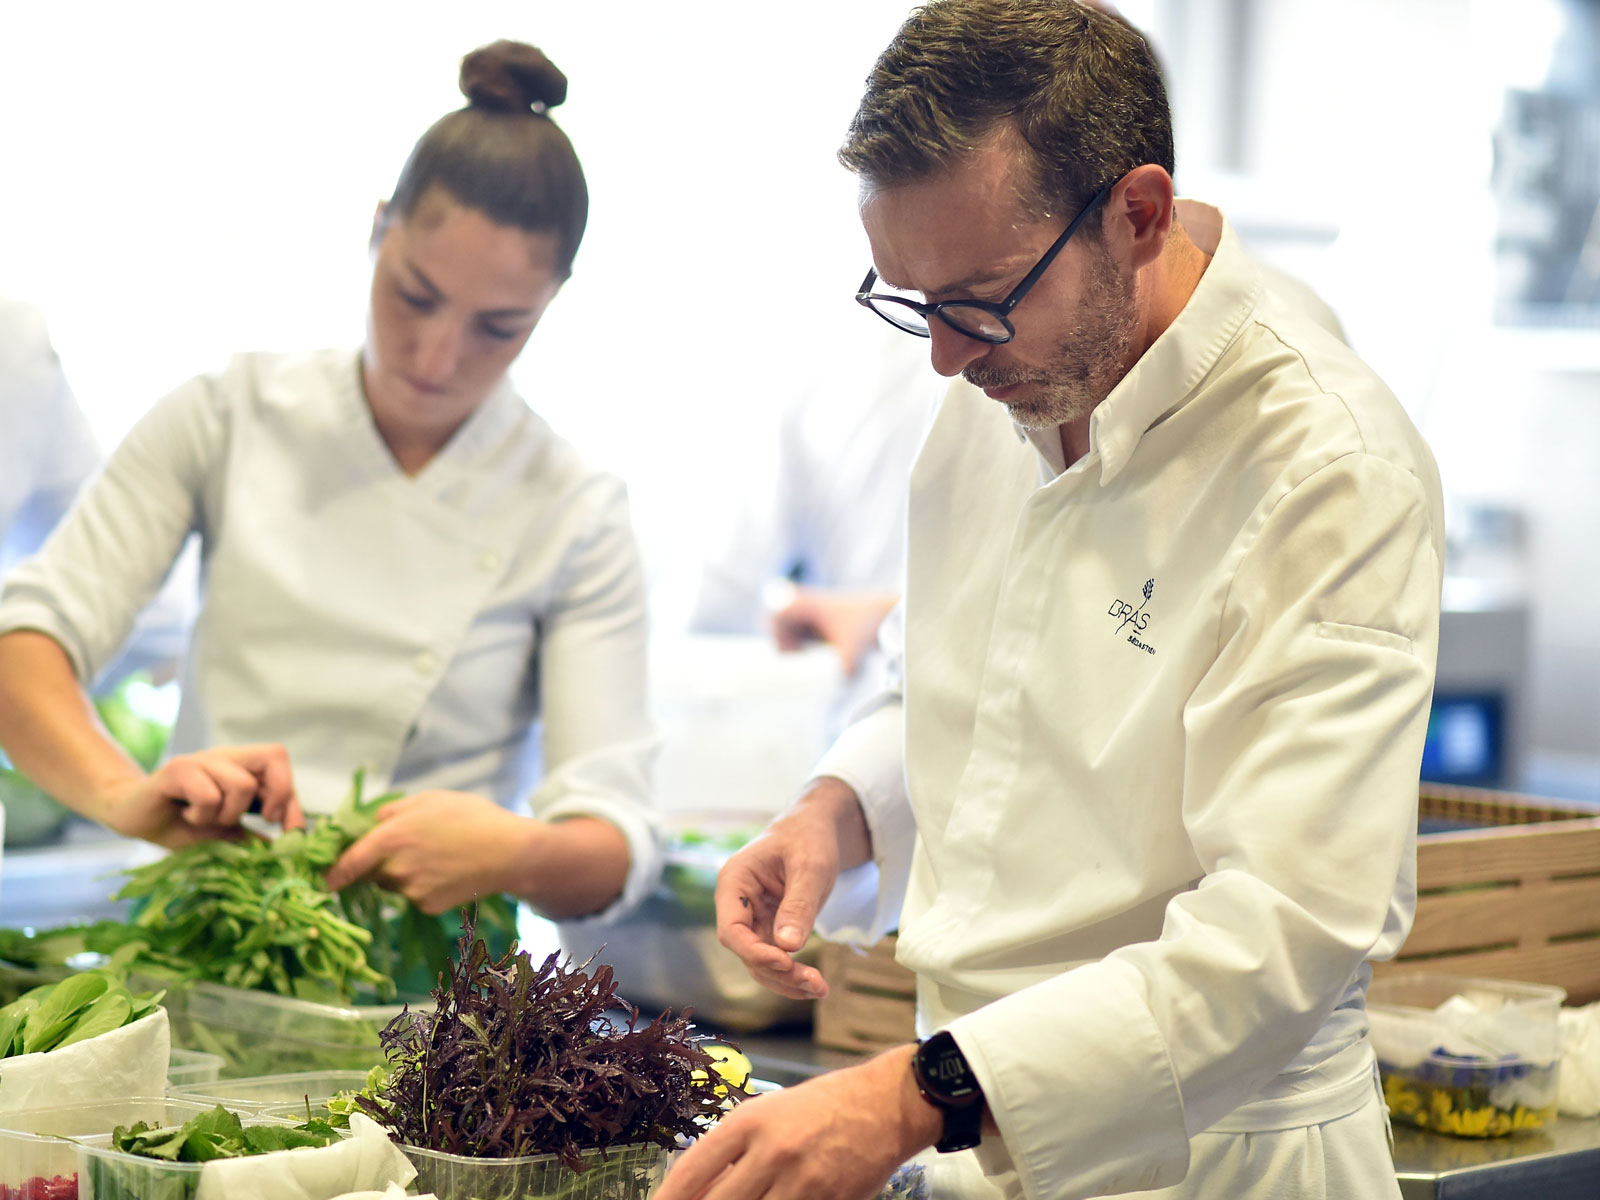 sebastien-bras-michelin-stars-FT-BLOG0119.jpg